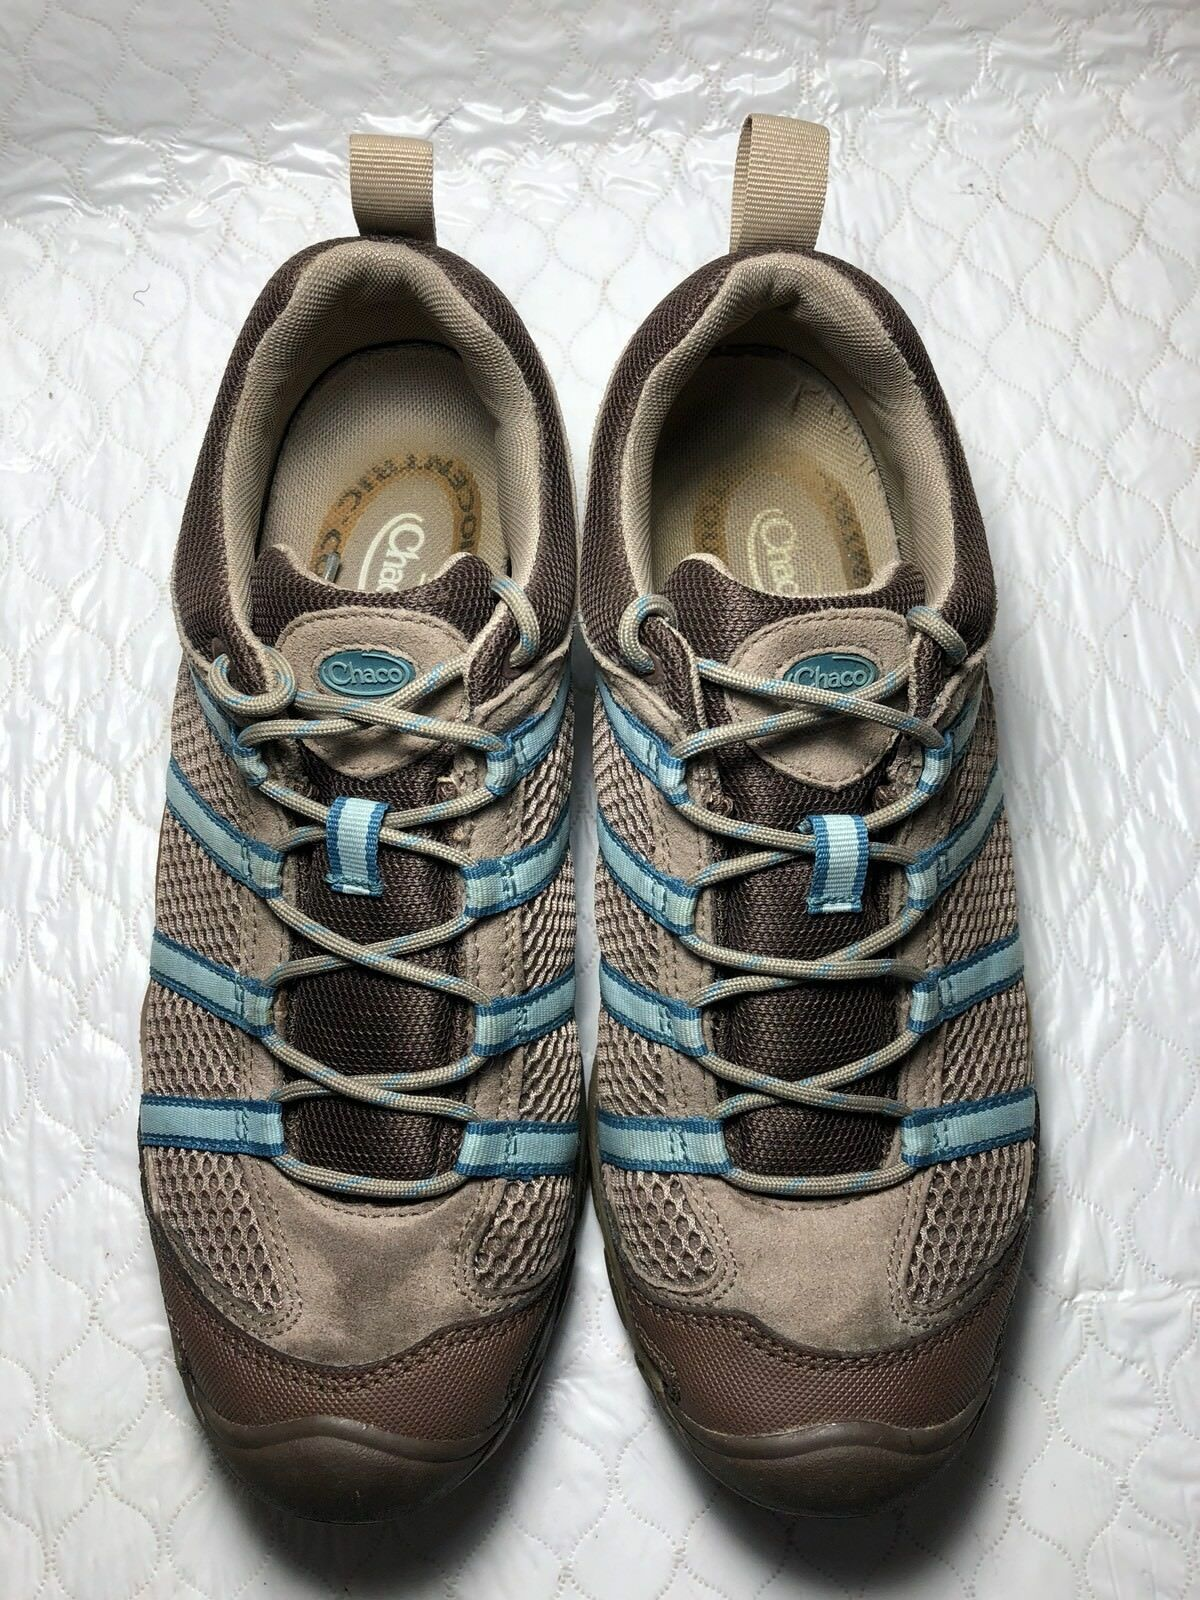 Chaco Bedrock Women's Brown Hiking shoes Sneakers Size-7.5